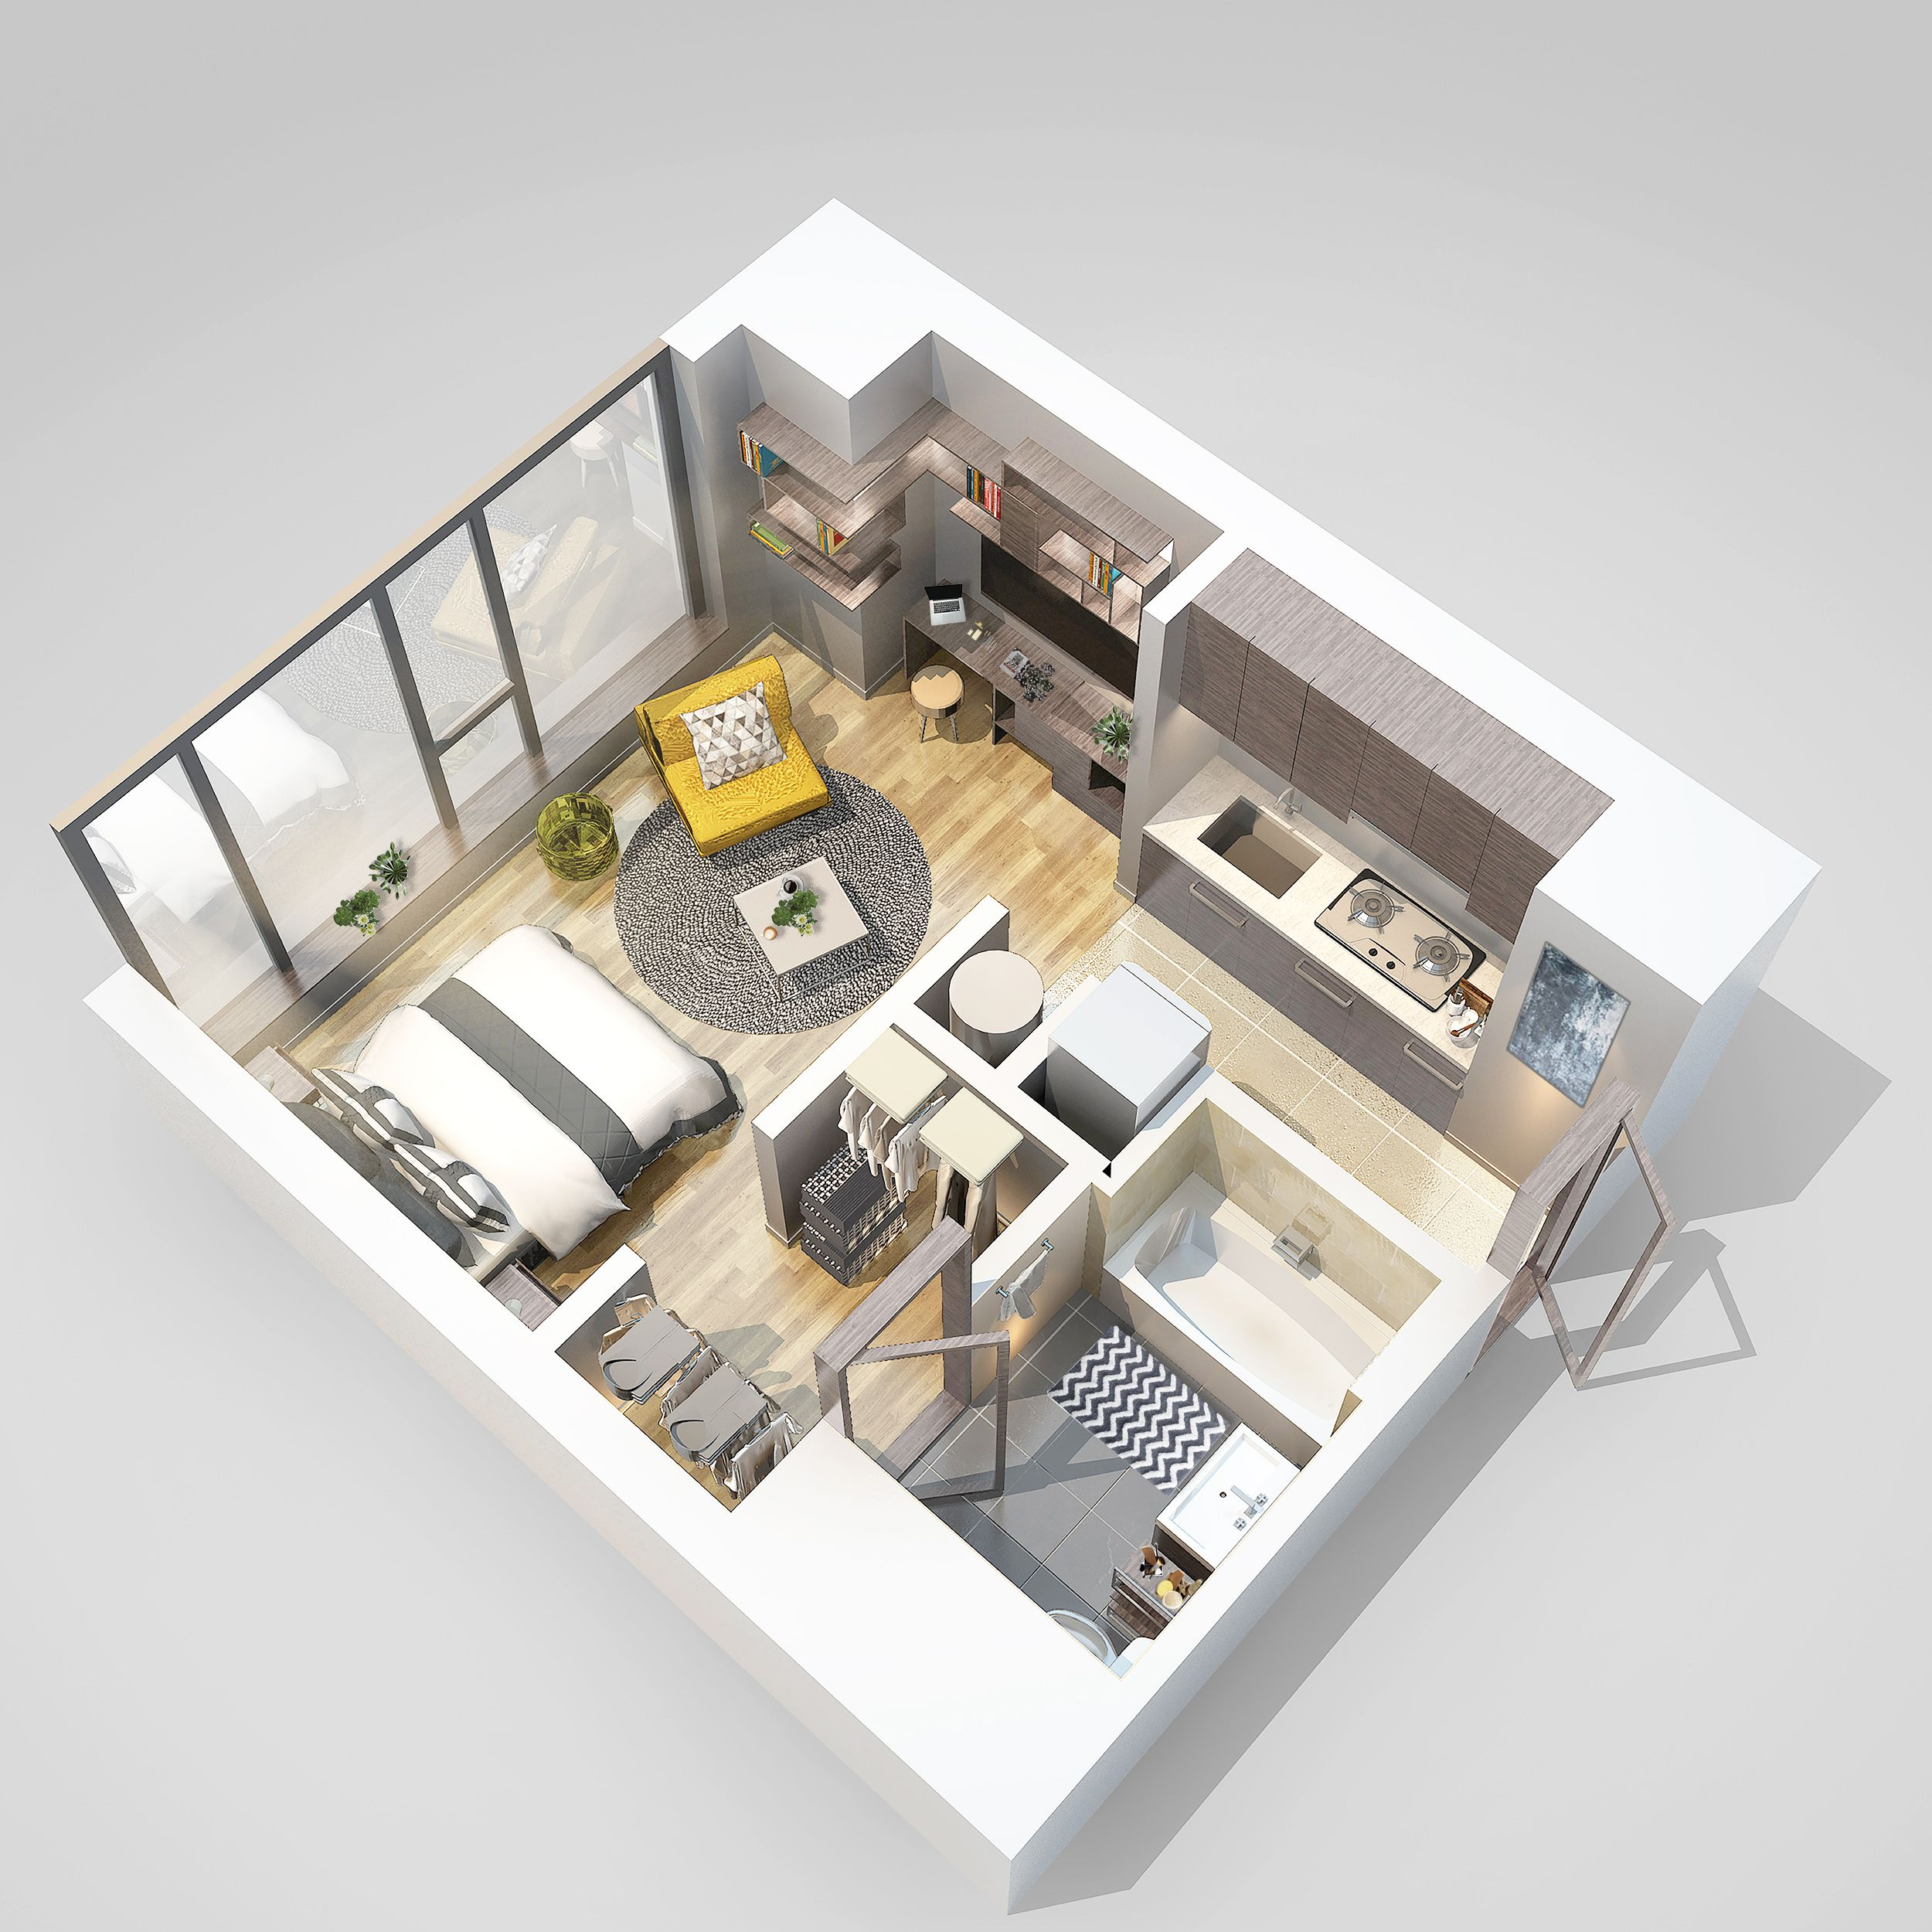 3D Rendered Floor Plan For A Brand New Luxury Apartment In